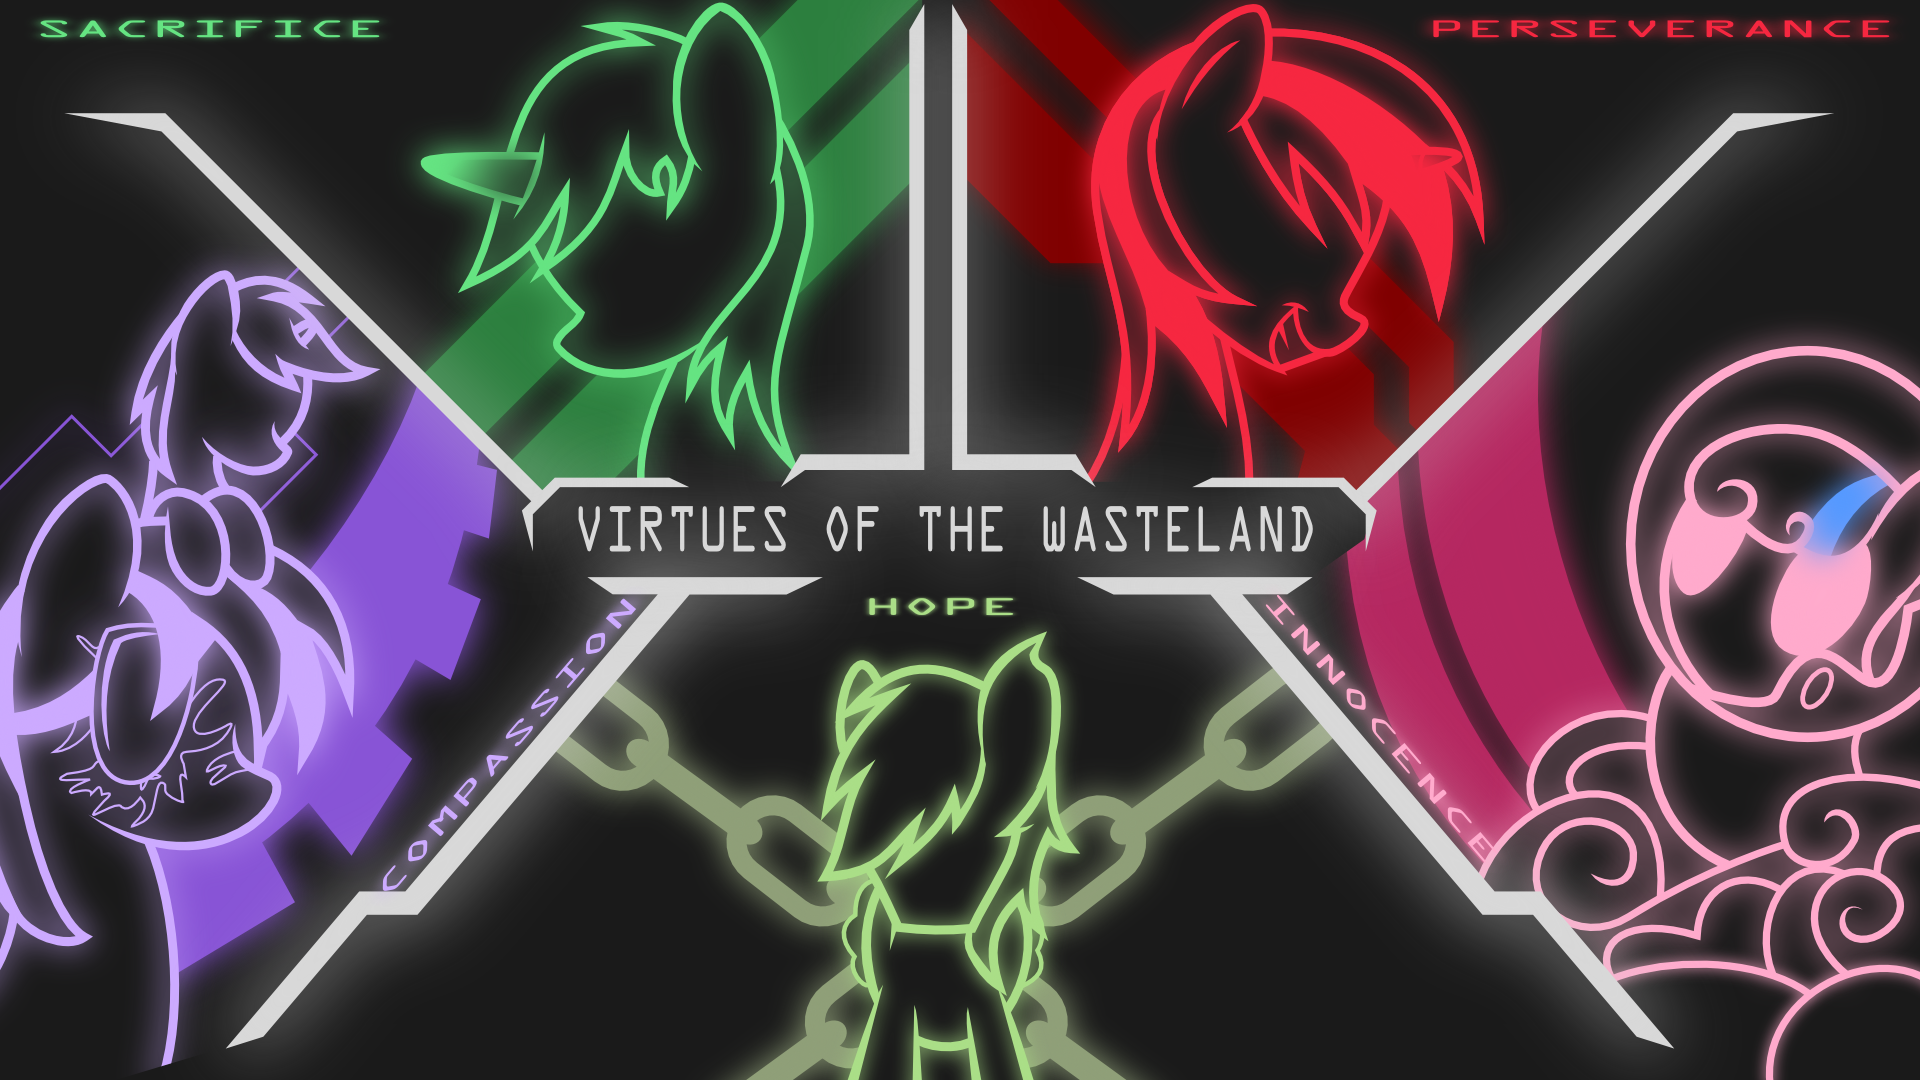 Virtues Of The Wasteland Wallpaper By Brisineo On DeviantArt